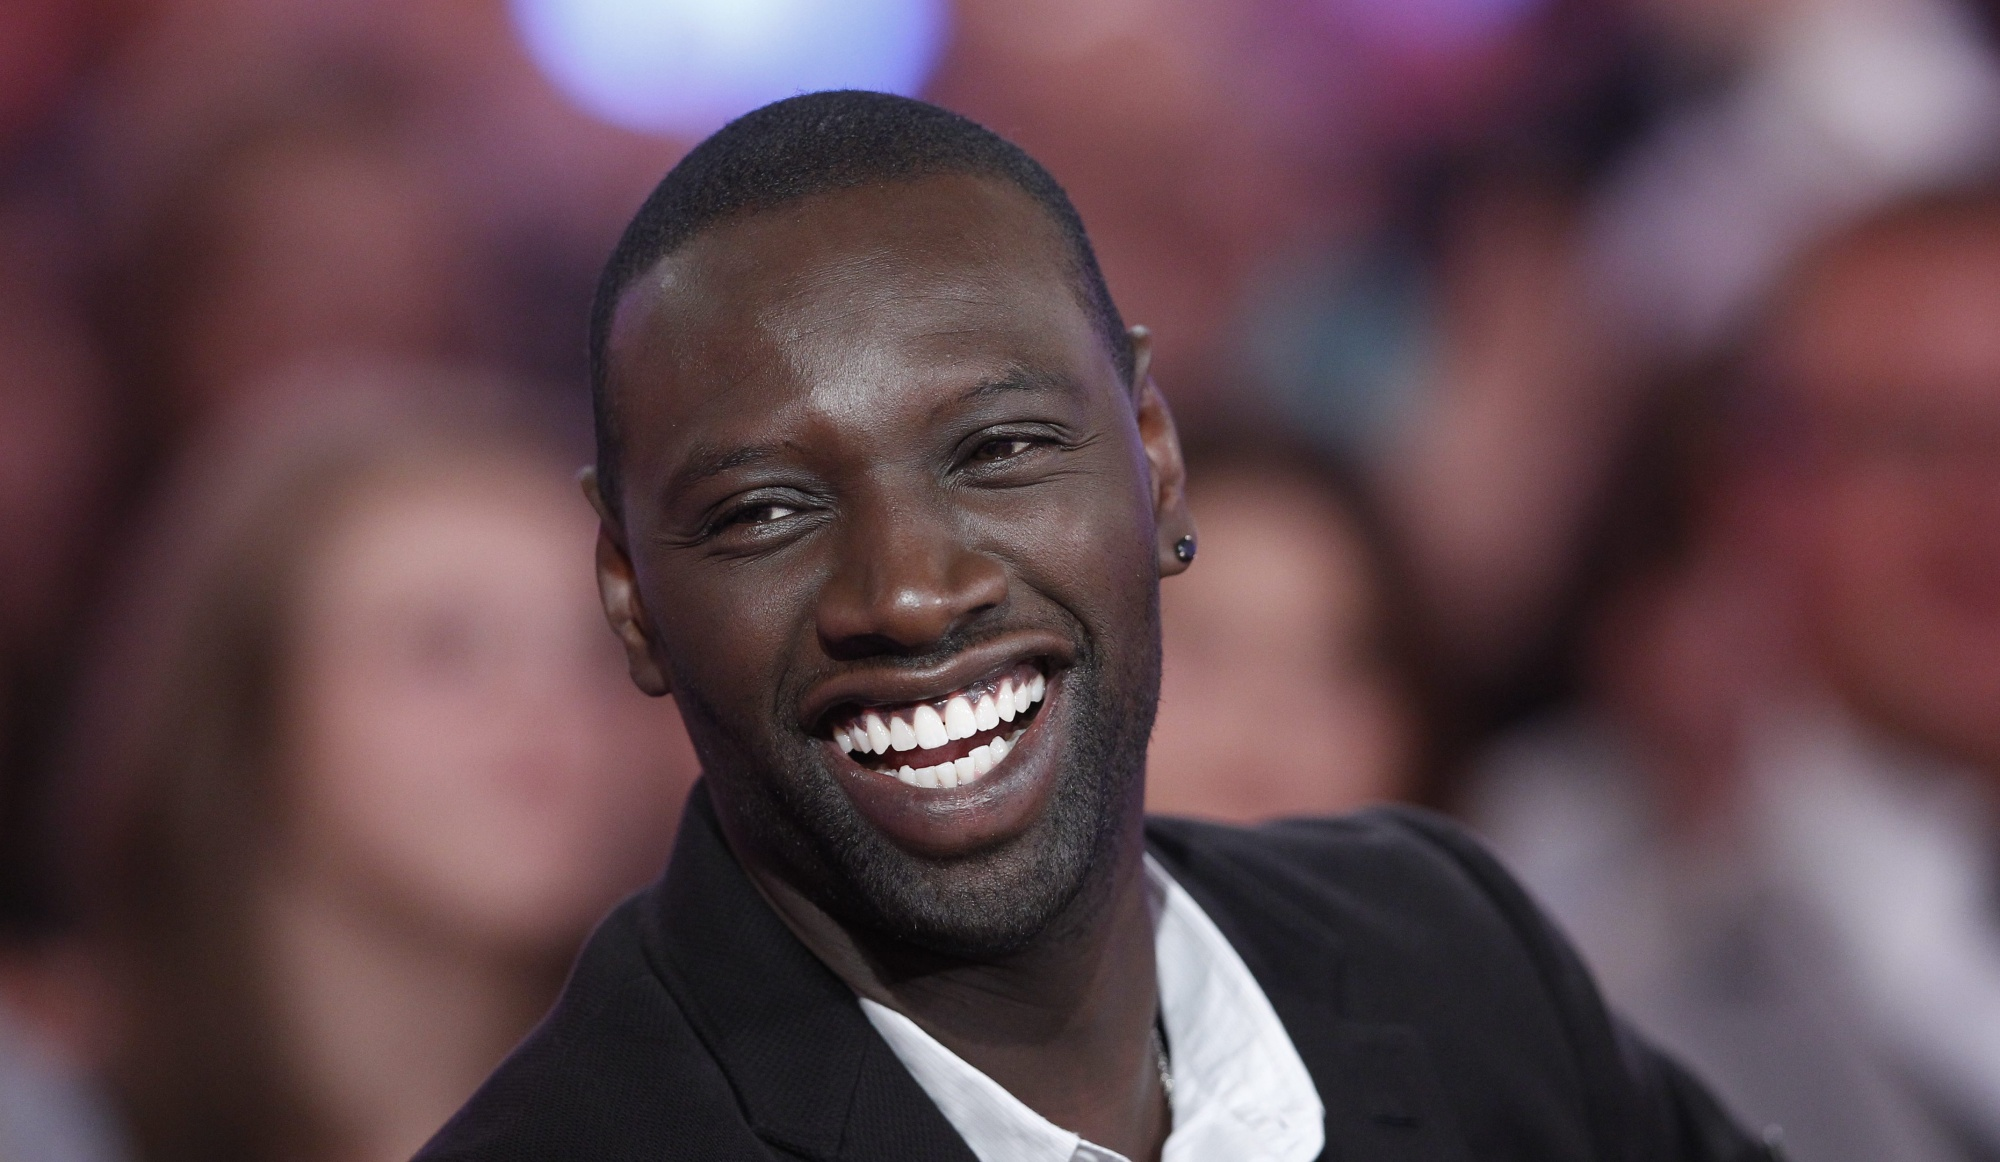 2000x1162 - Omar Sy Wallpapers 7